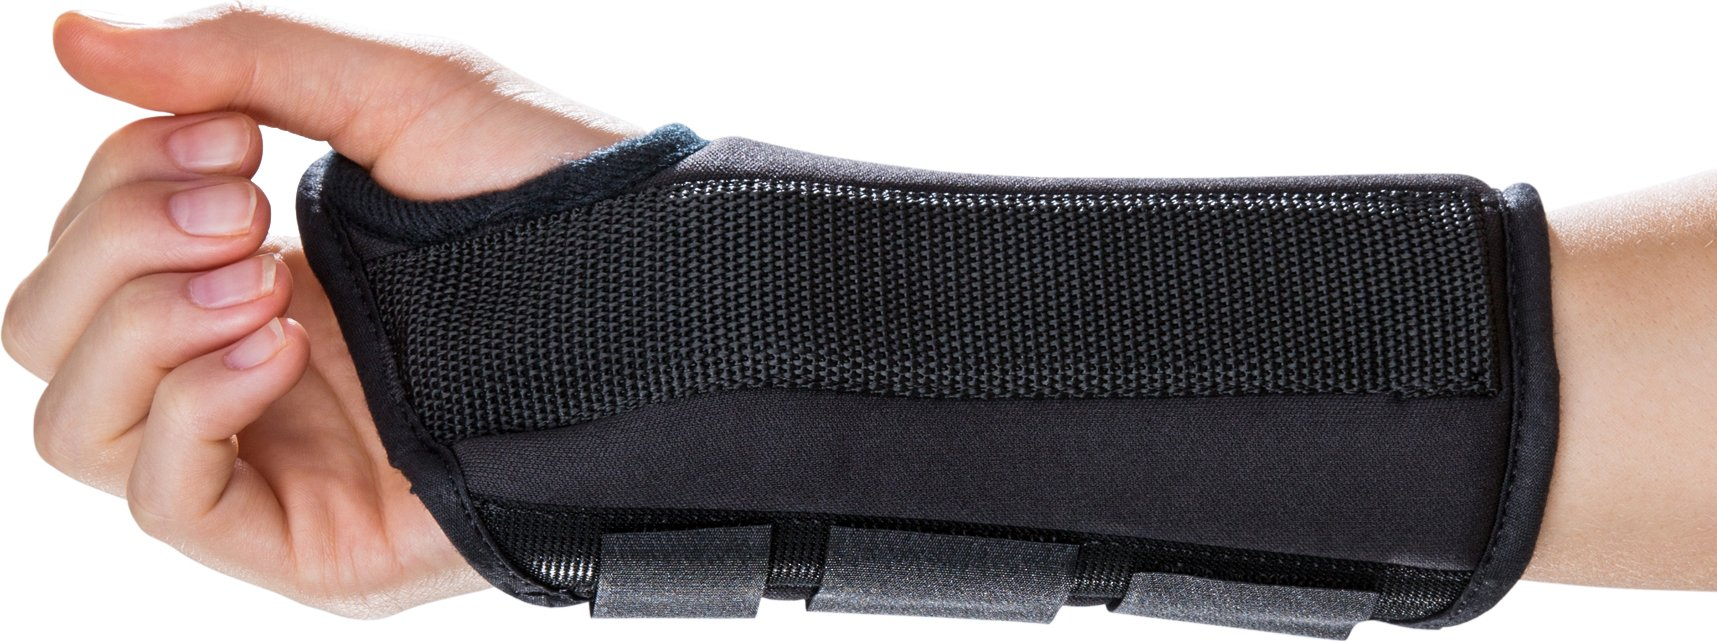 DJ Orthodics ProCare ComfortFORM Wrist Support Brace: Right Hand, X-Small by DonJoy (Image #3)